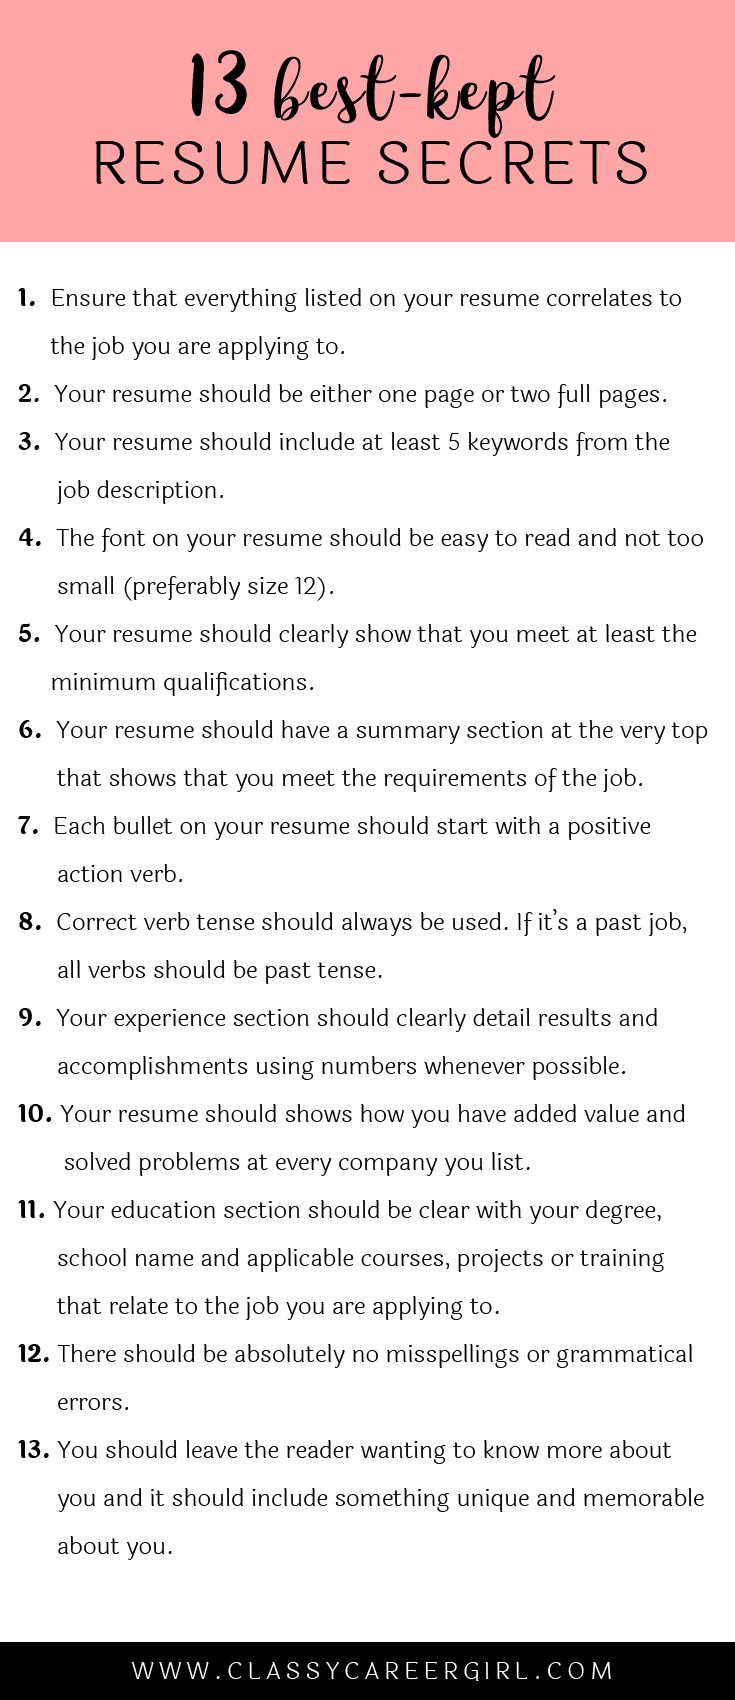 Opposenewapstandardsus  Wonderful  Ideas About Resume On Pinterest  Cv Format Resume Cv And  With Exciting Some Hiring Managers Will Toss Your Resume Out If You Dont Know These  With Divine Audio Visual Resume Also Wall Street Resume In Addition How To Start A Resume Cover Letter And Technology Resume Template As Well As Free Resume Samples Download Additionally Proper Font Size For Resume From Pinterestcom With Opposenewapstandardsus  Exciting  Ideas About Resume On Pinterest  Cv Format Resume Cv And  With Divine Some Hiring Managers Will Toss Your Resume Out If You Dont Know These  And Wonderful Audio Visual Resume Also Wall Street Resume In Addition How To Start A Resume Cover Letter From Pinterestcom